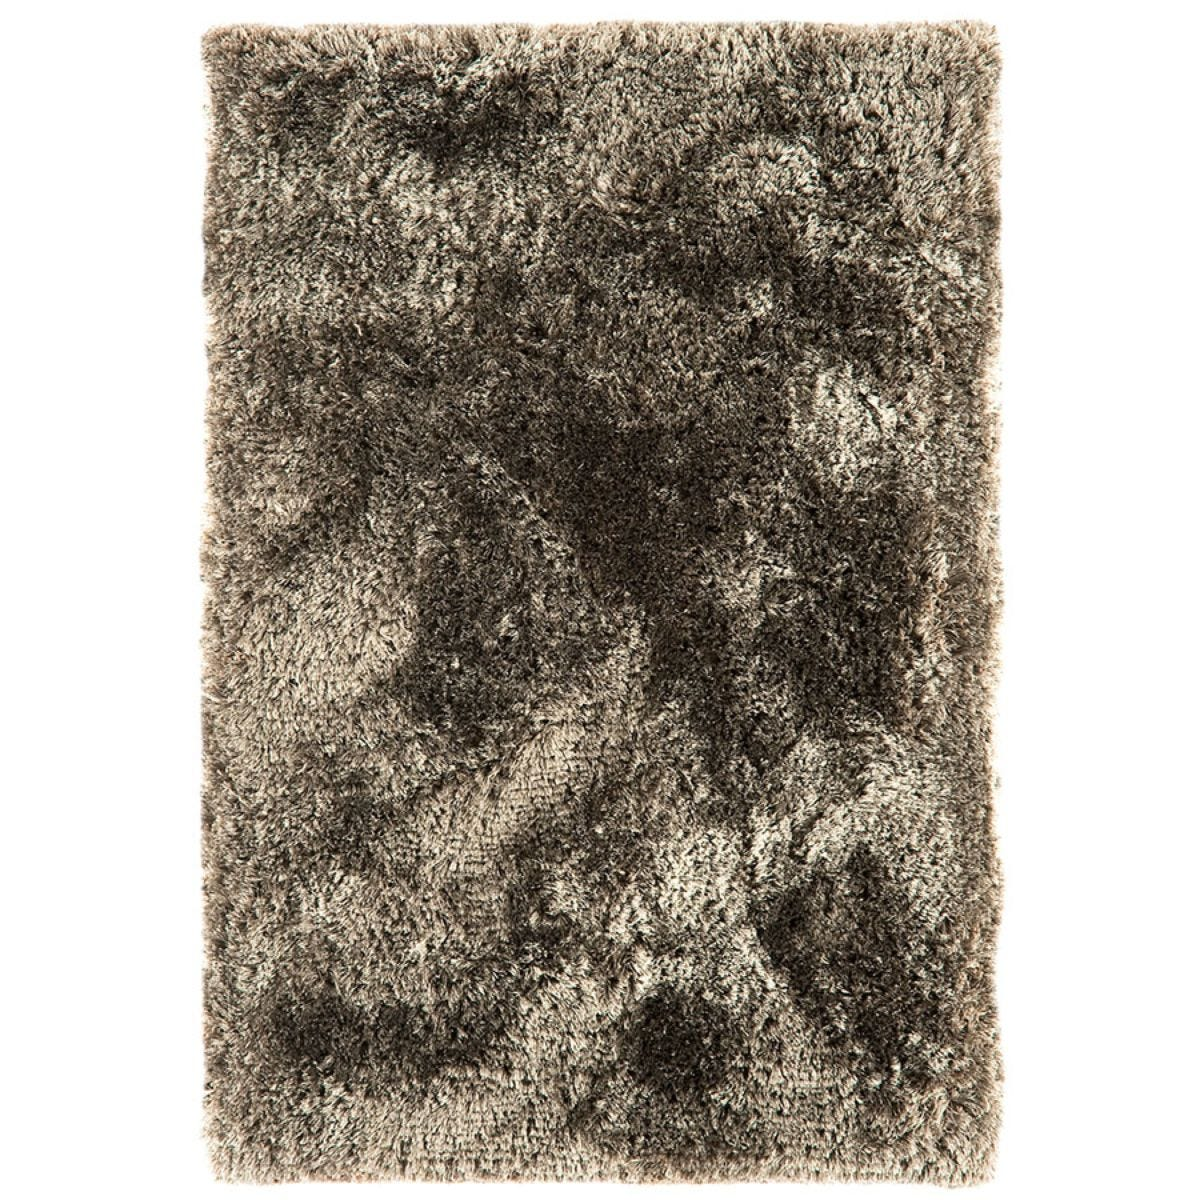 Asiatic Plush Shaggy Rug, 70 x 140cm - Taupe